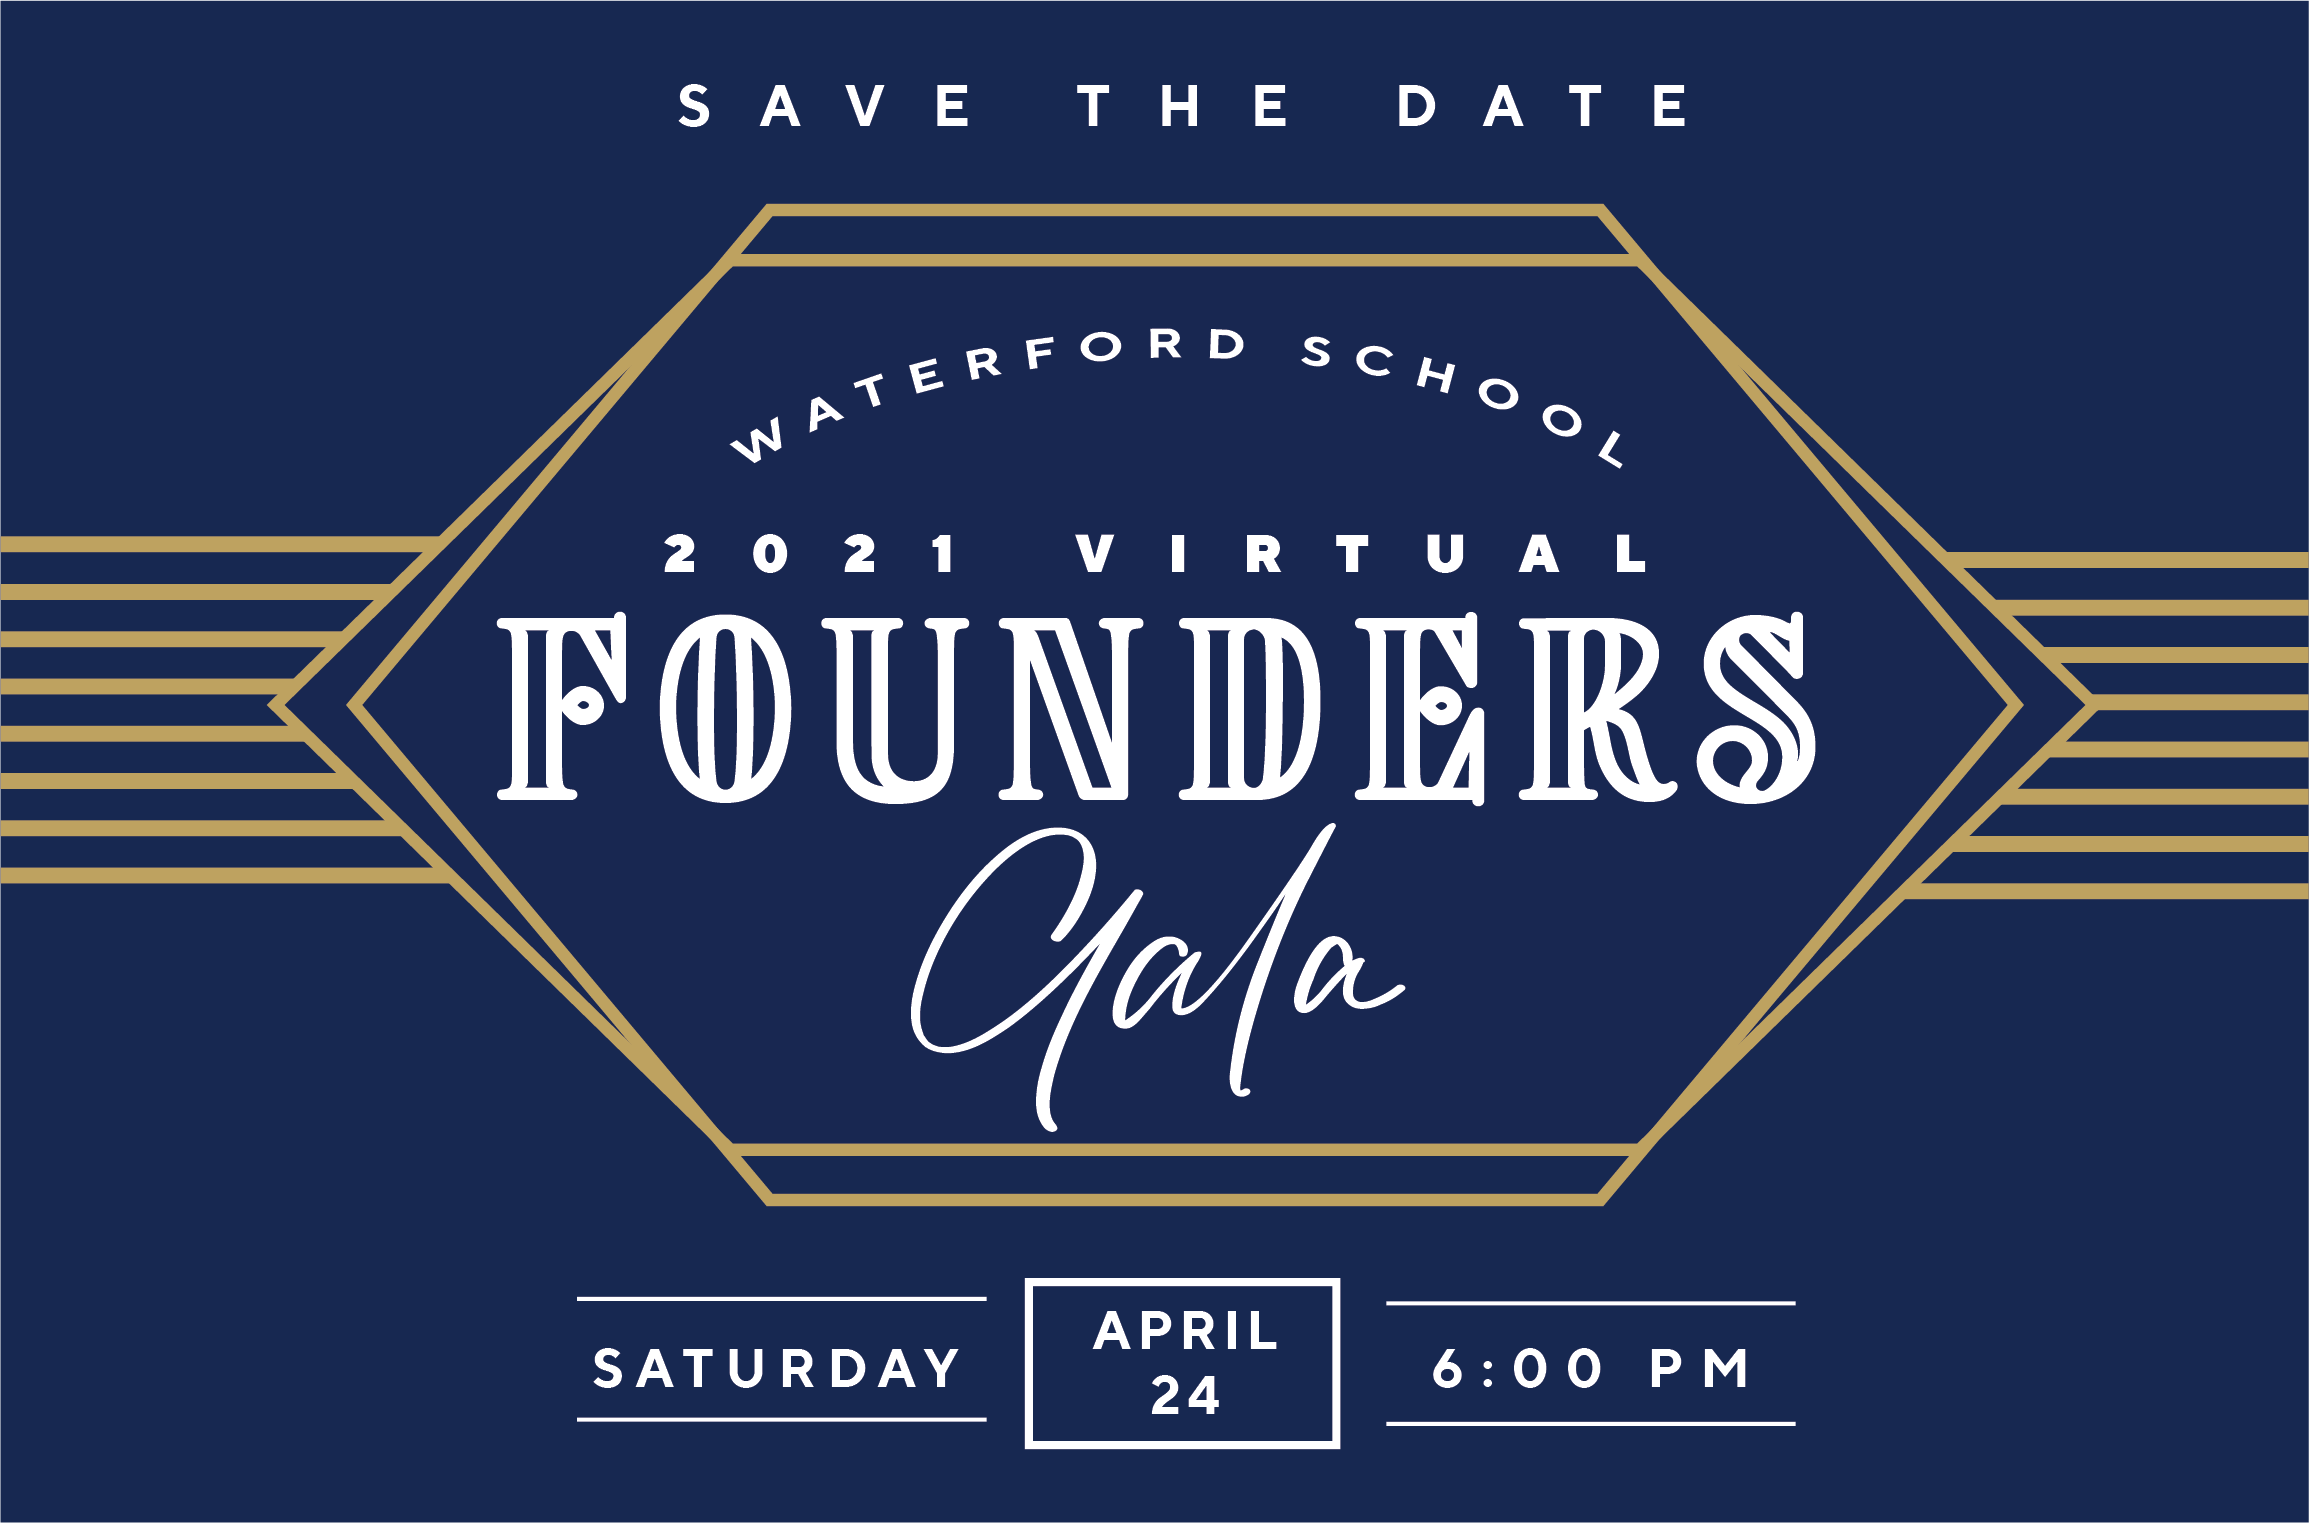 Founder's Gala - Save the Date